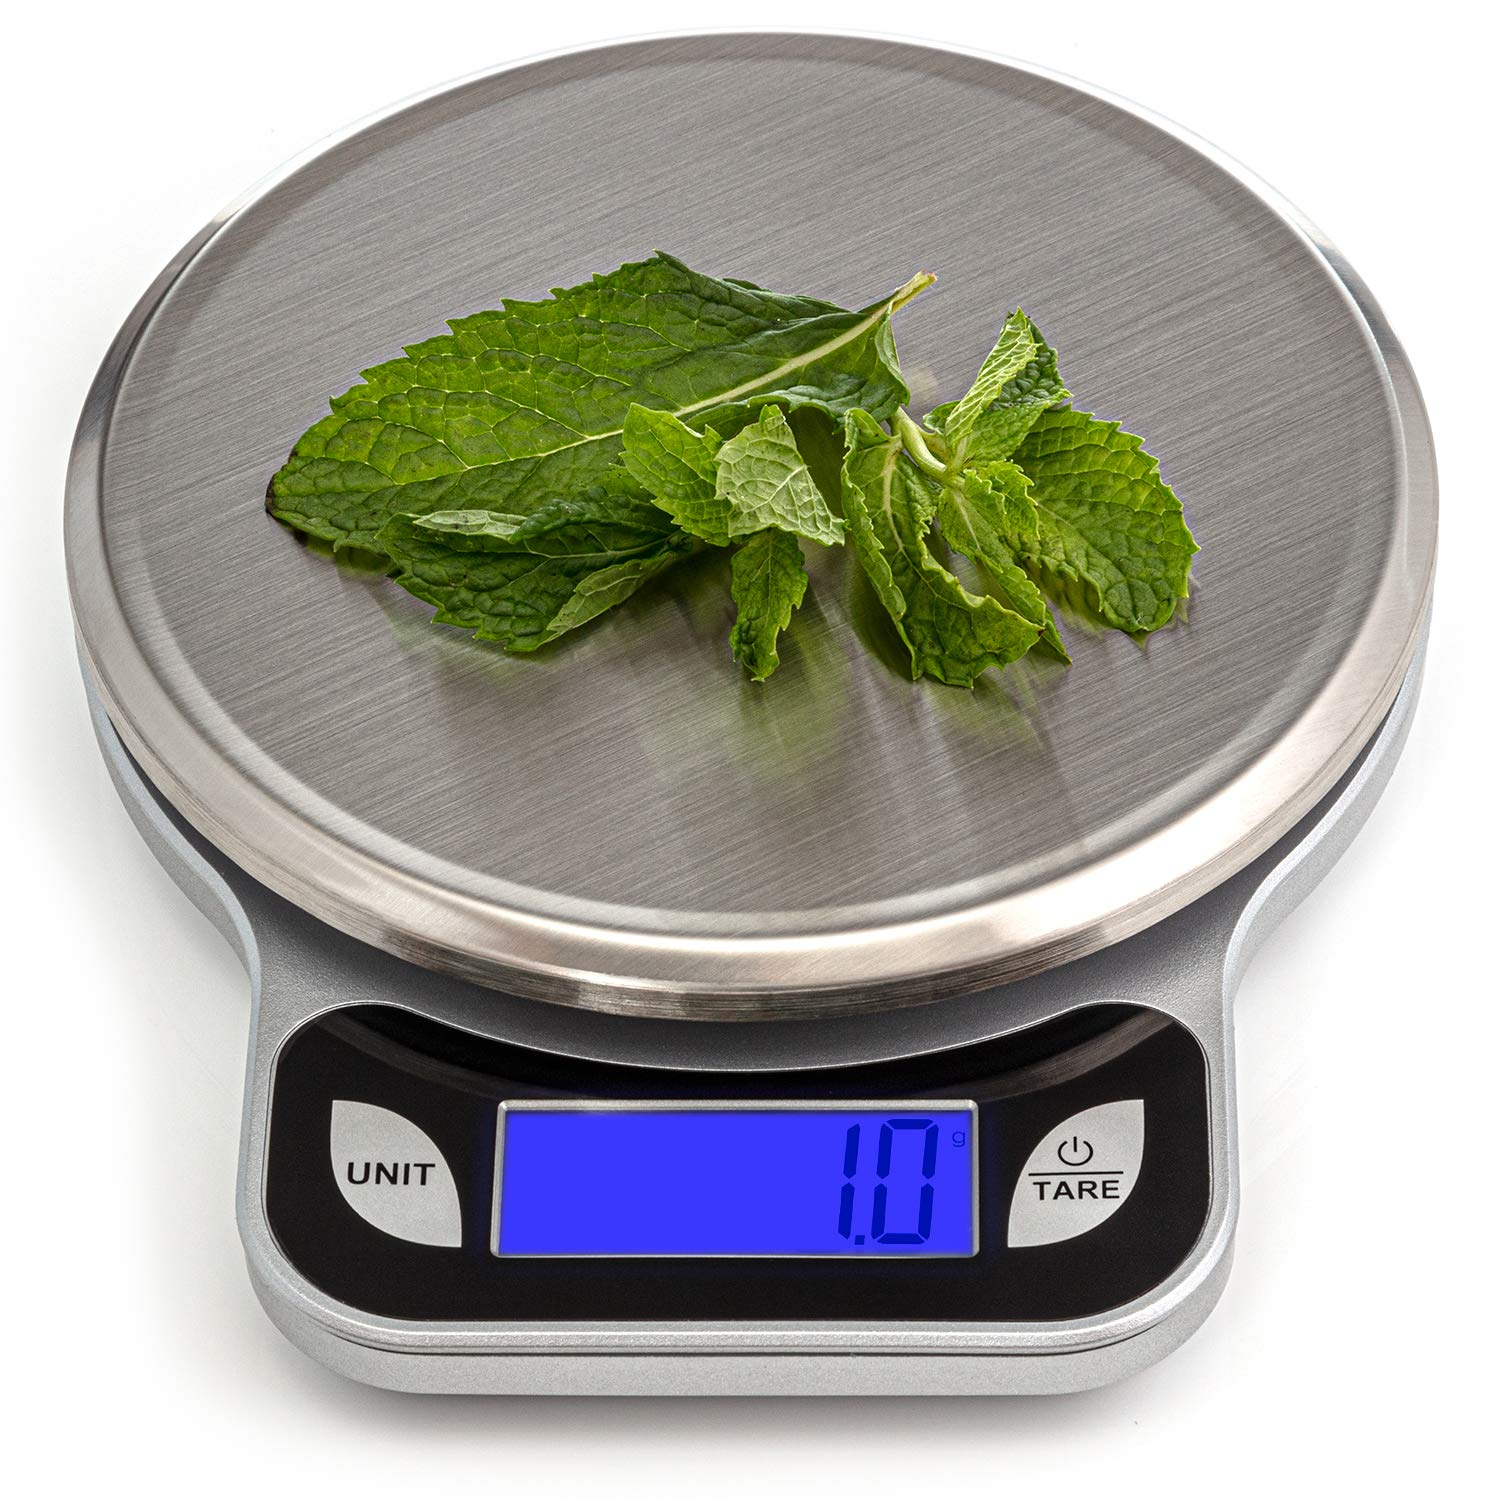 Digital scale for weed